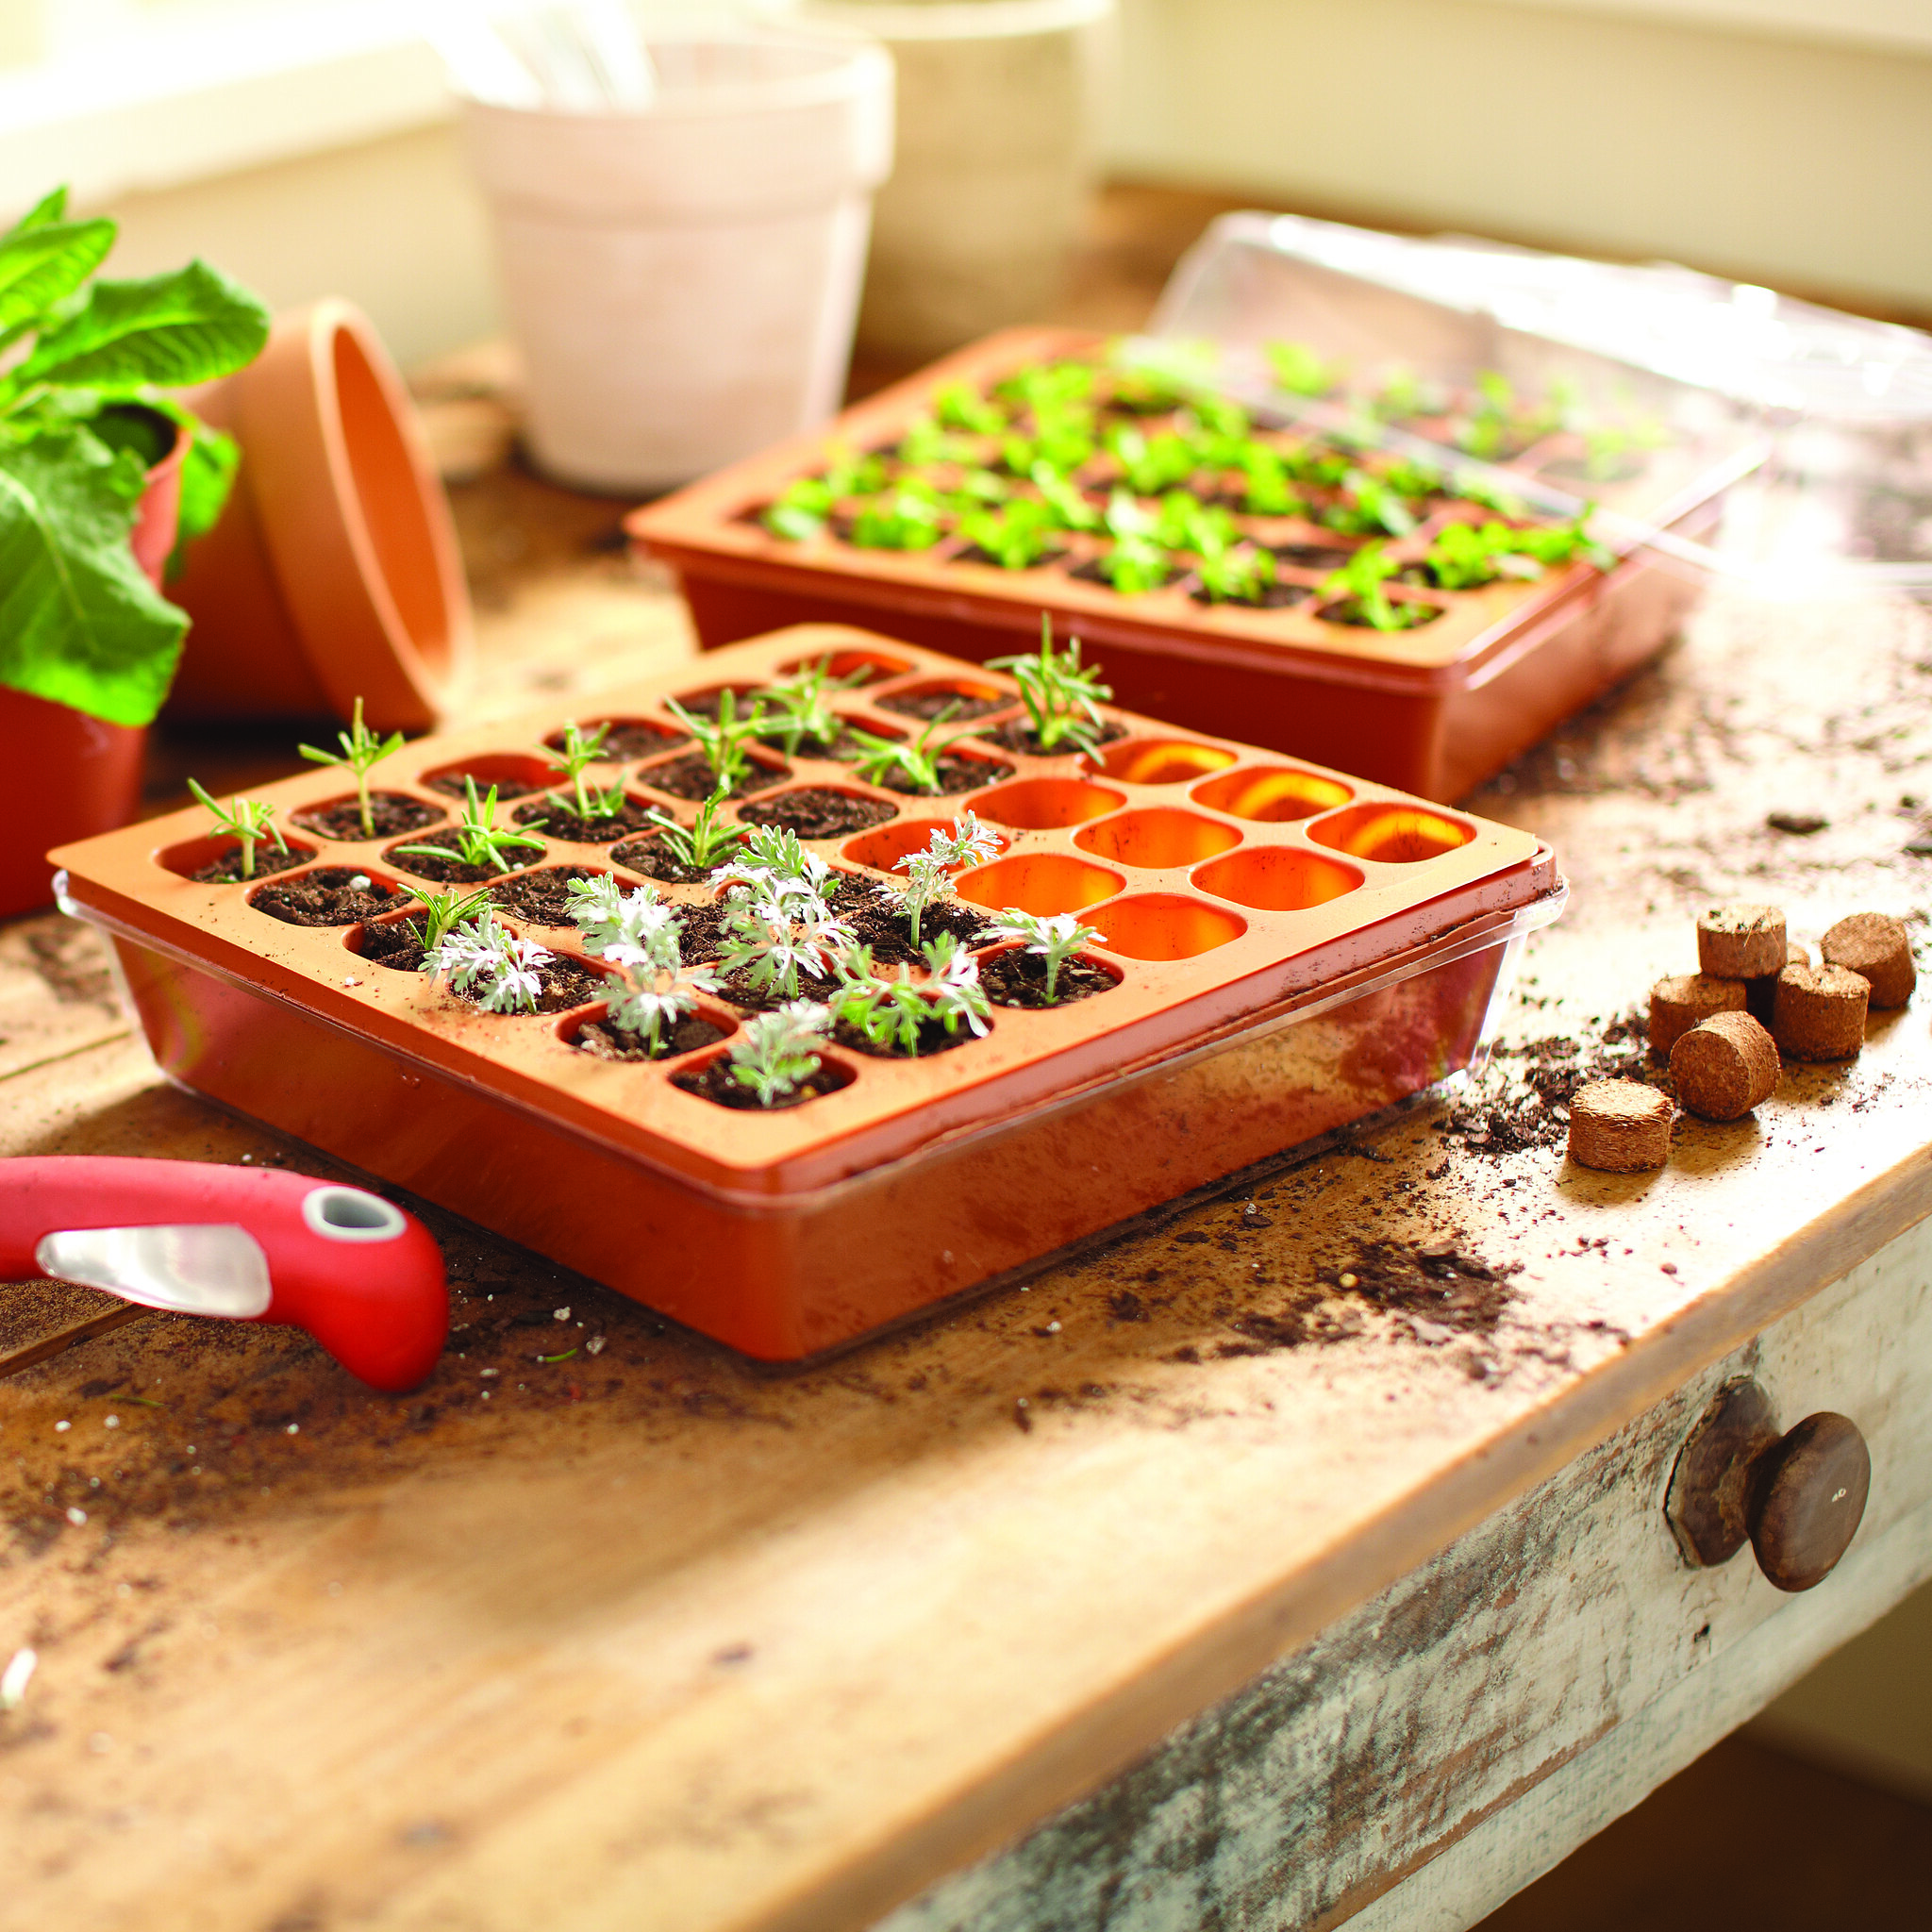 best seed starter kit on a table surrounded by soil